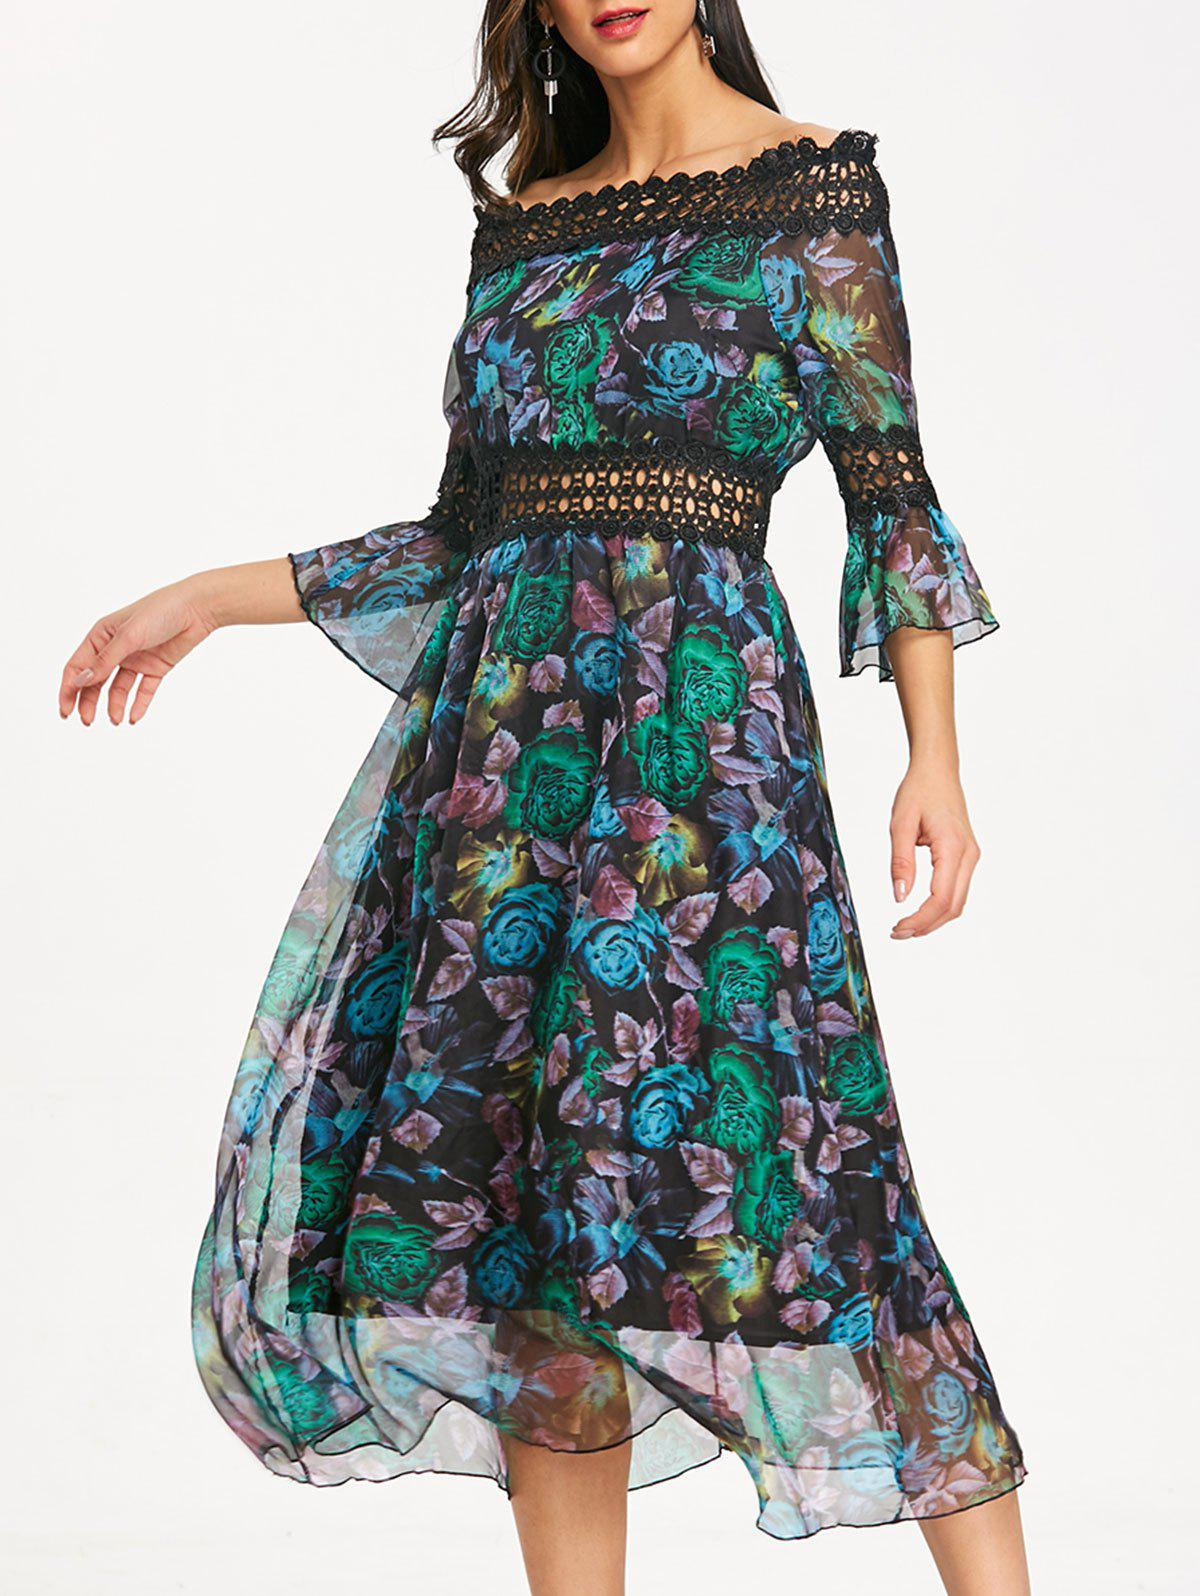 Peacock Feather Print Off Shoulder Chiffon Dress - GREEN L